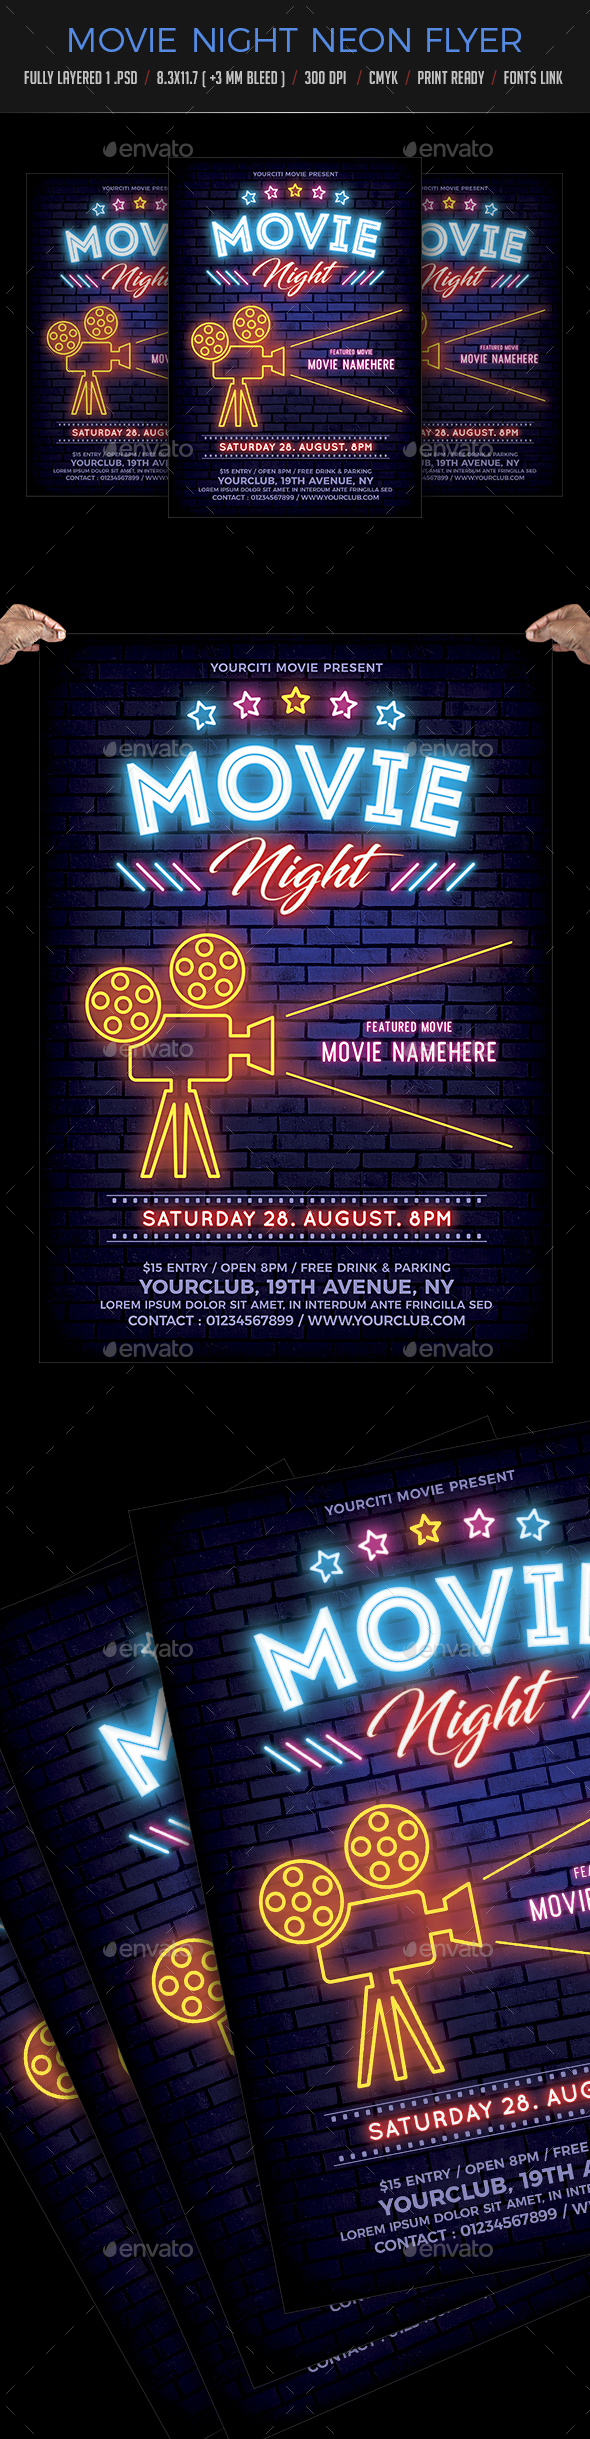 Movie Night Neon Flyer - Clubs & Parties Events